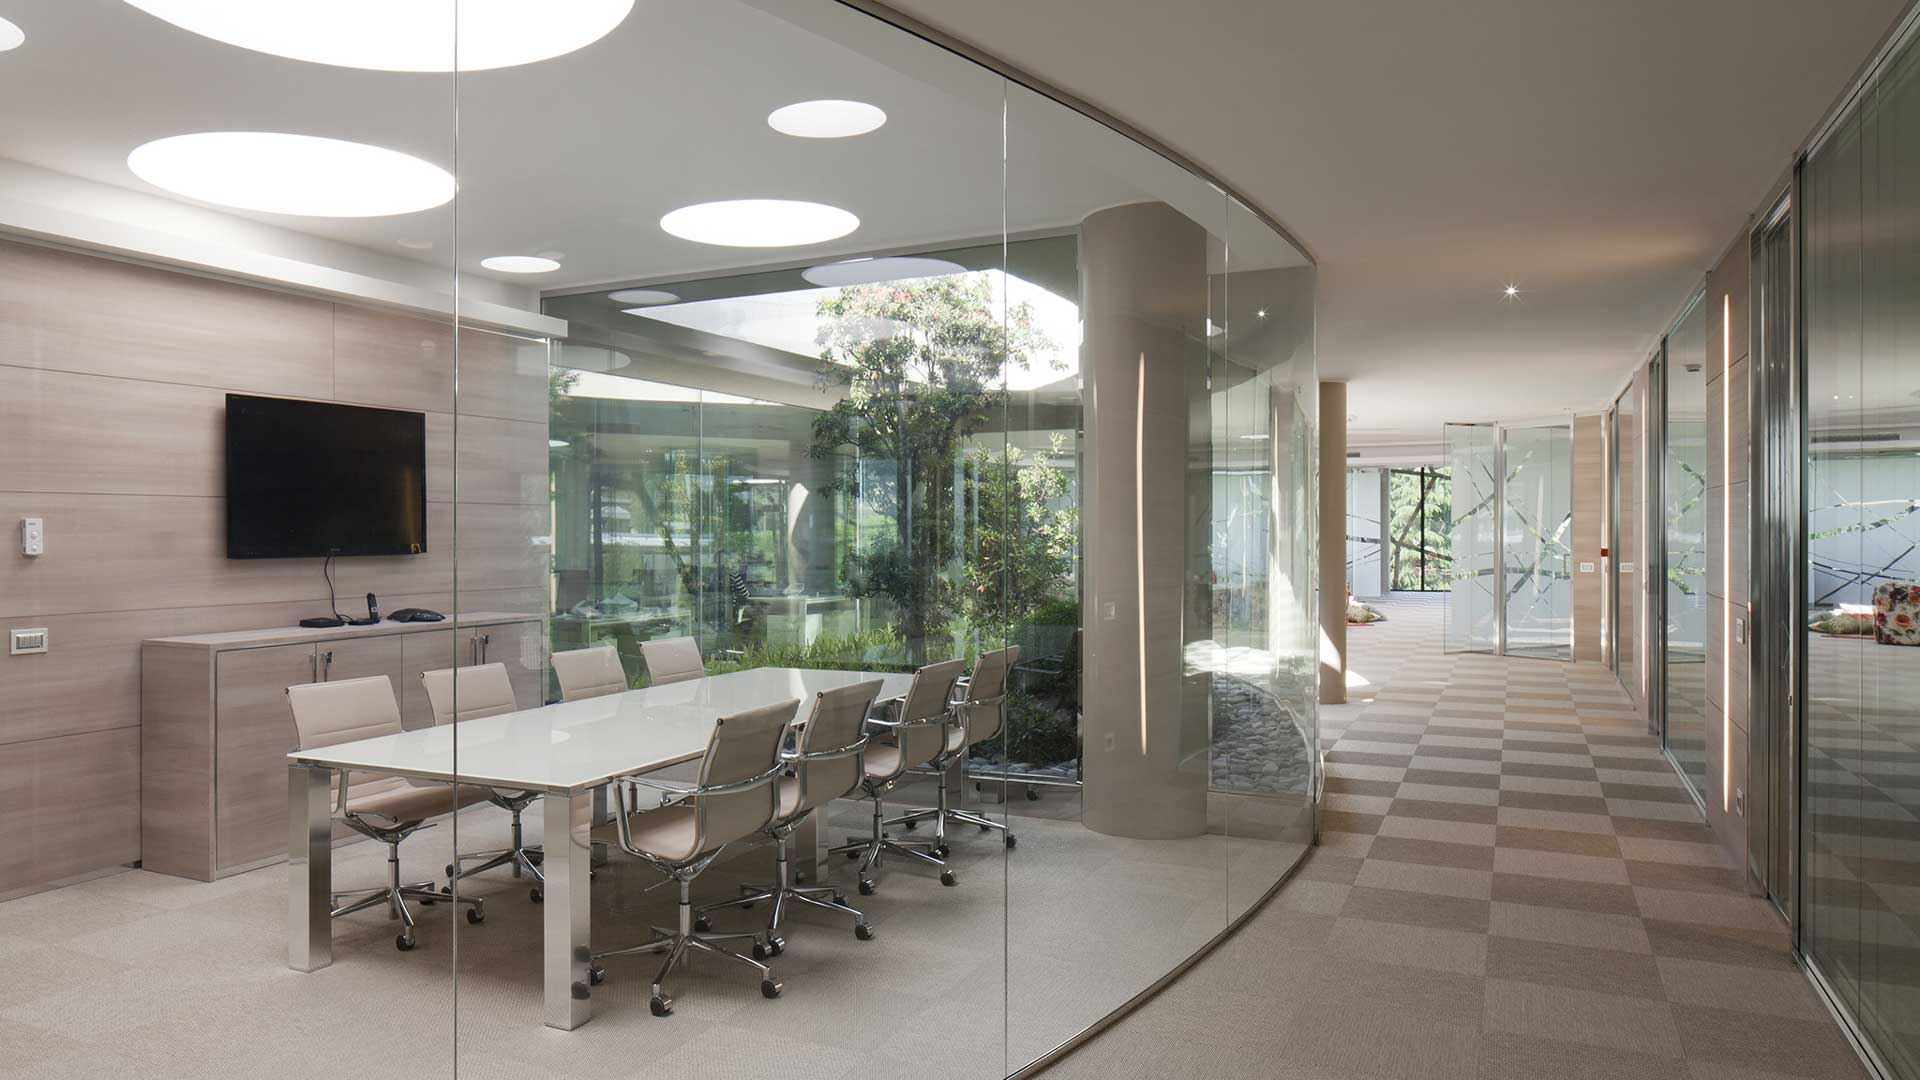 XL02-scrivanie-per-meeting-room-Level-Office-Landscape